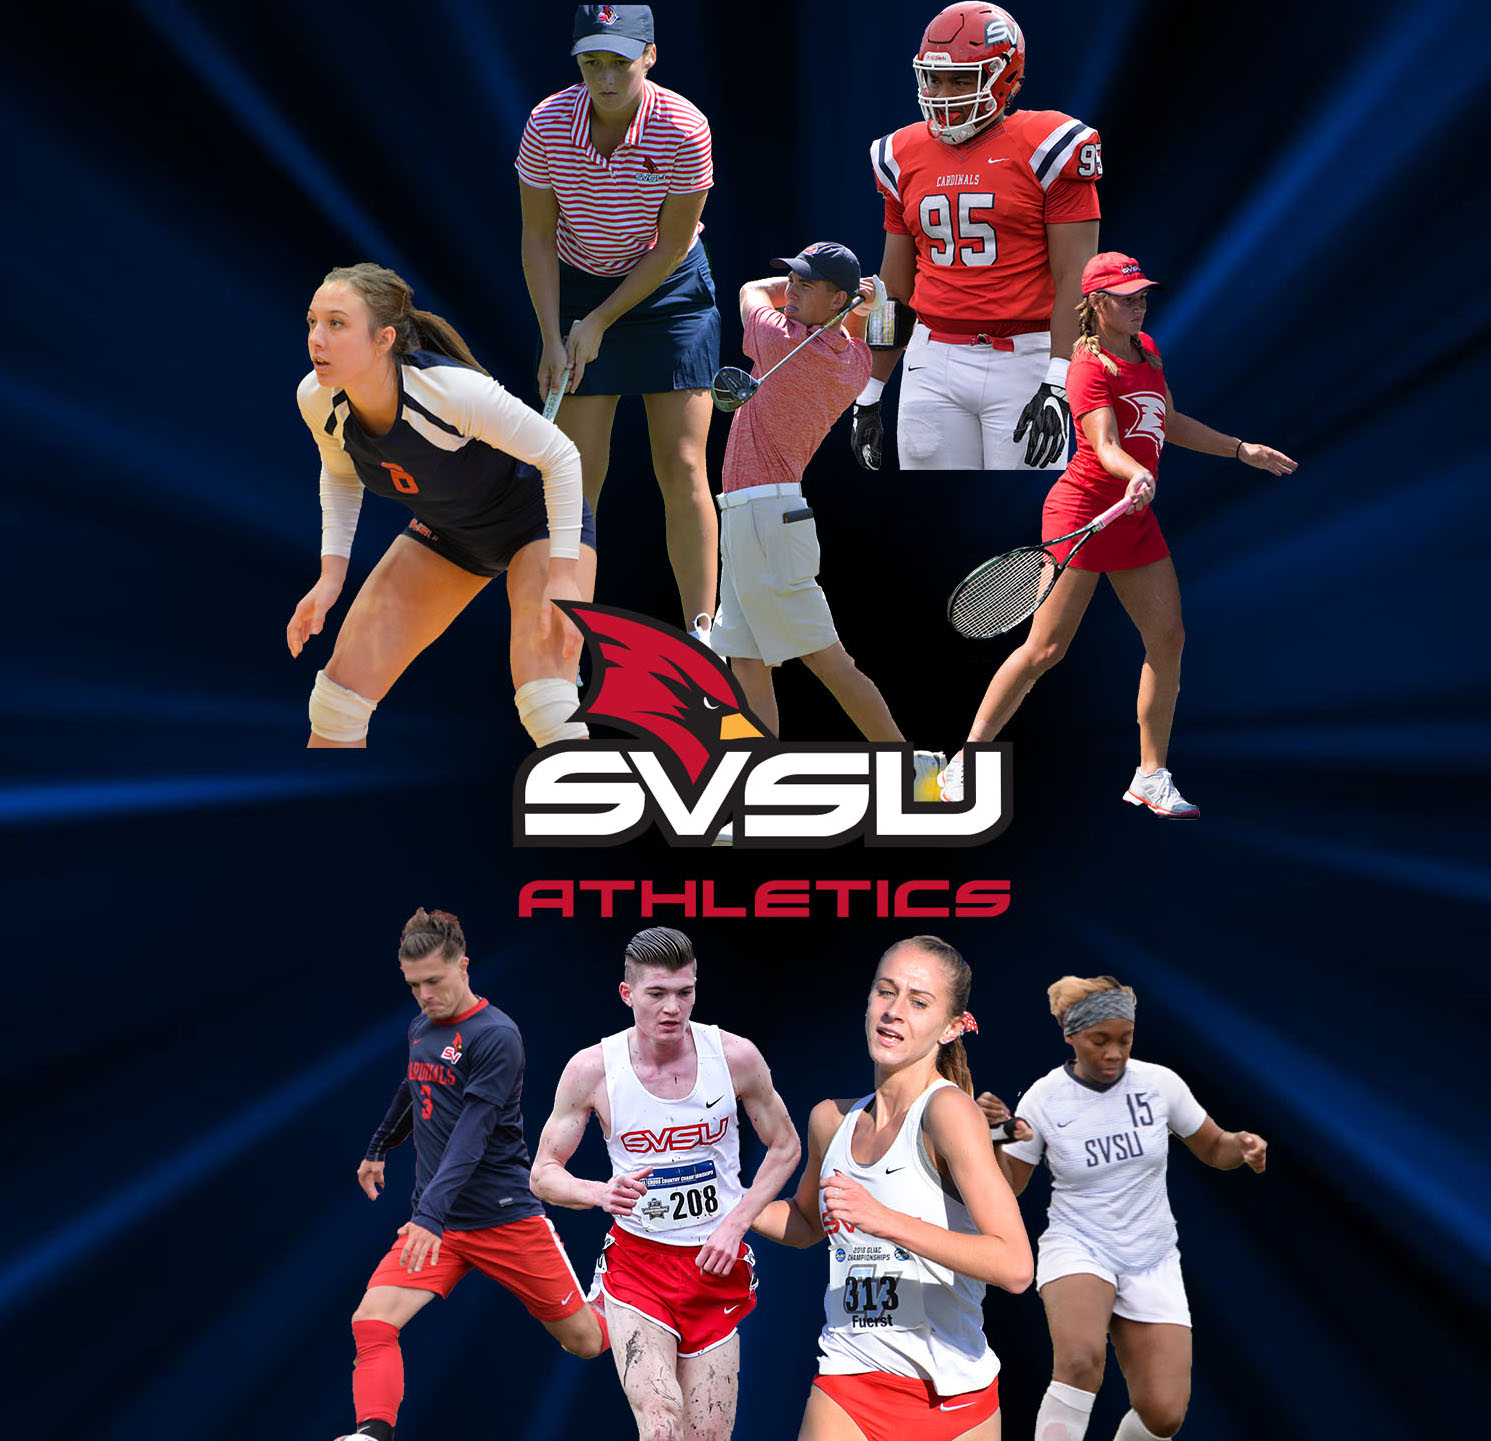 Fall 2019 Athletic Collage